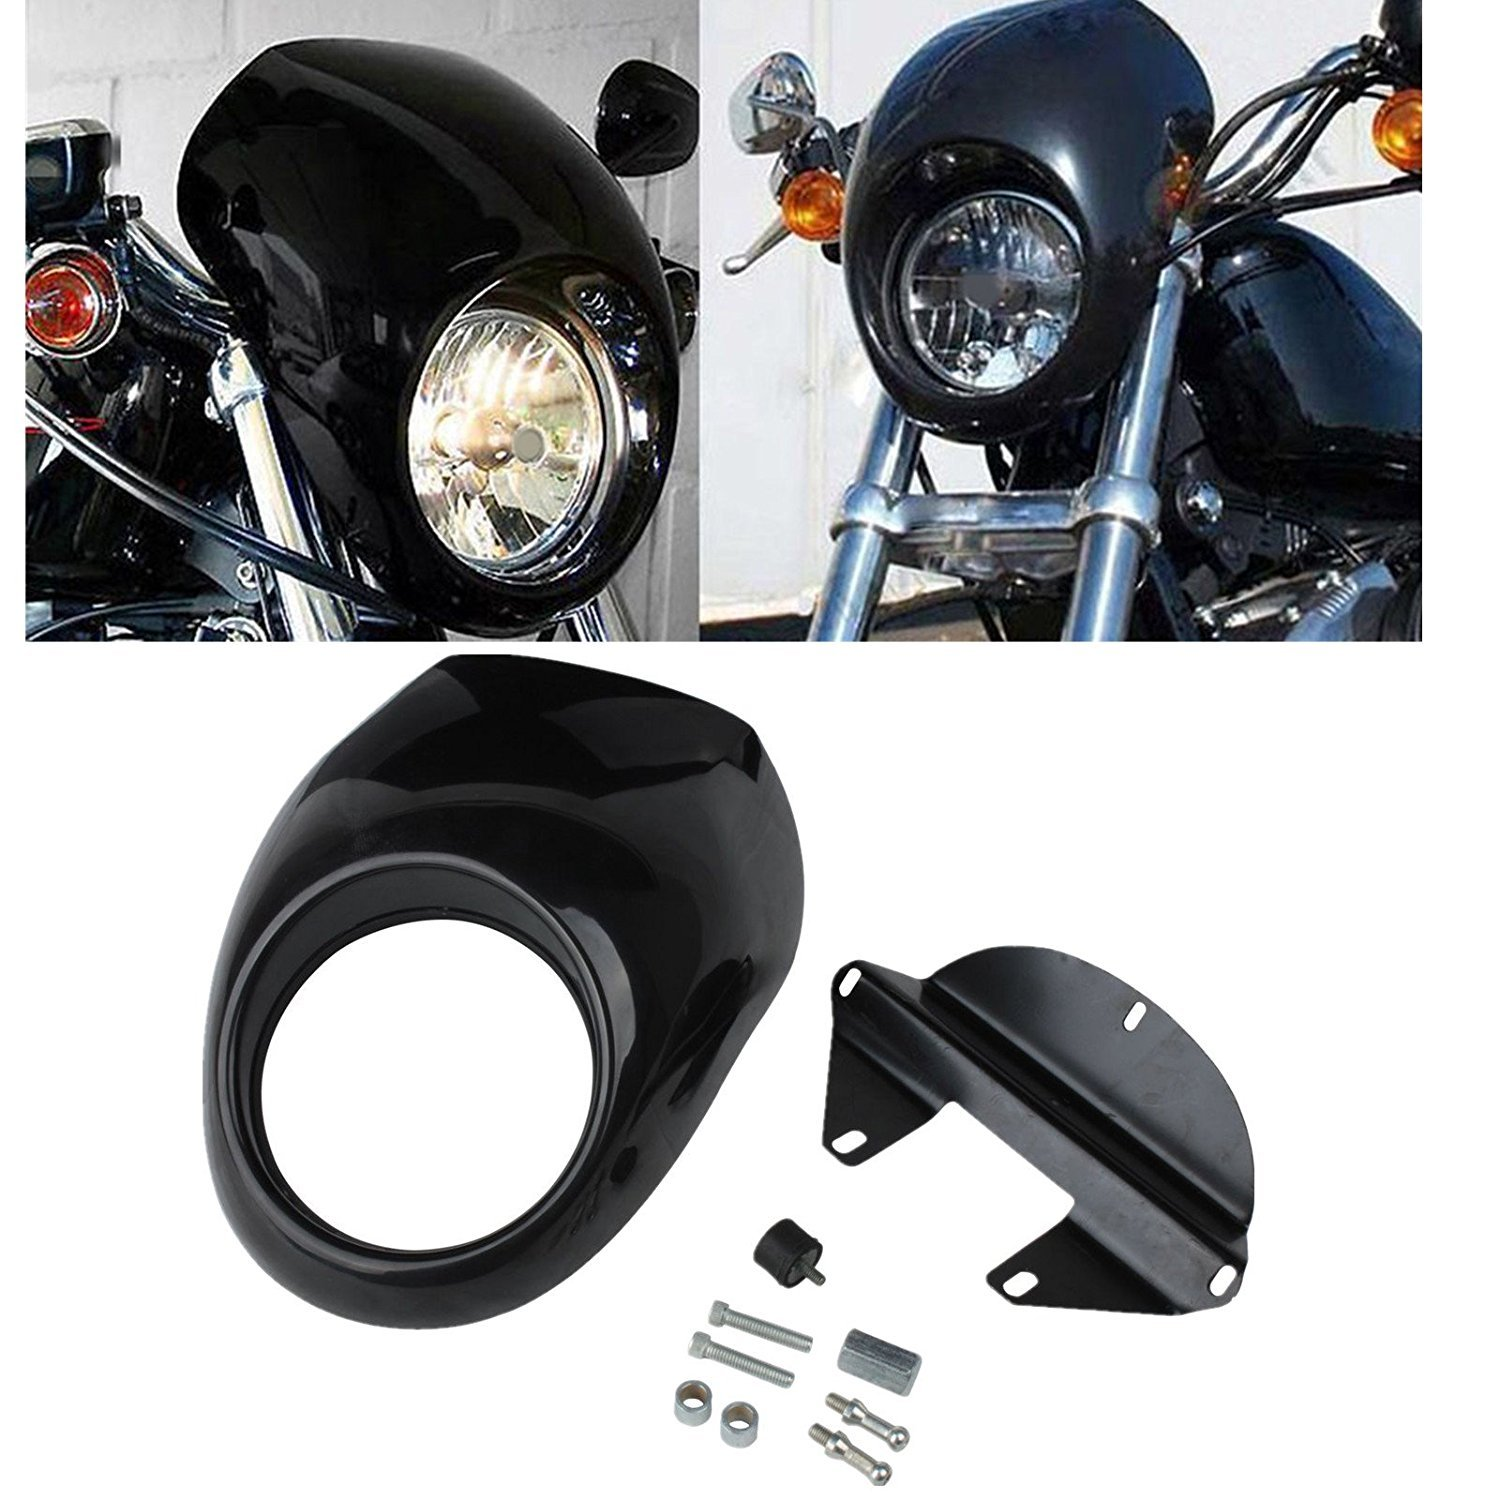 ICT Valvetronix Headlamp Bezel Front Cowling Lamp Mask Trim Cover for Harley Sportster Dyna FX//XL 1200/883